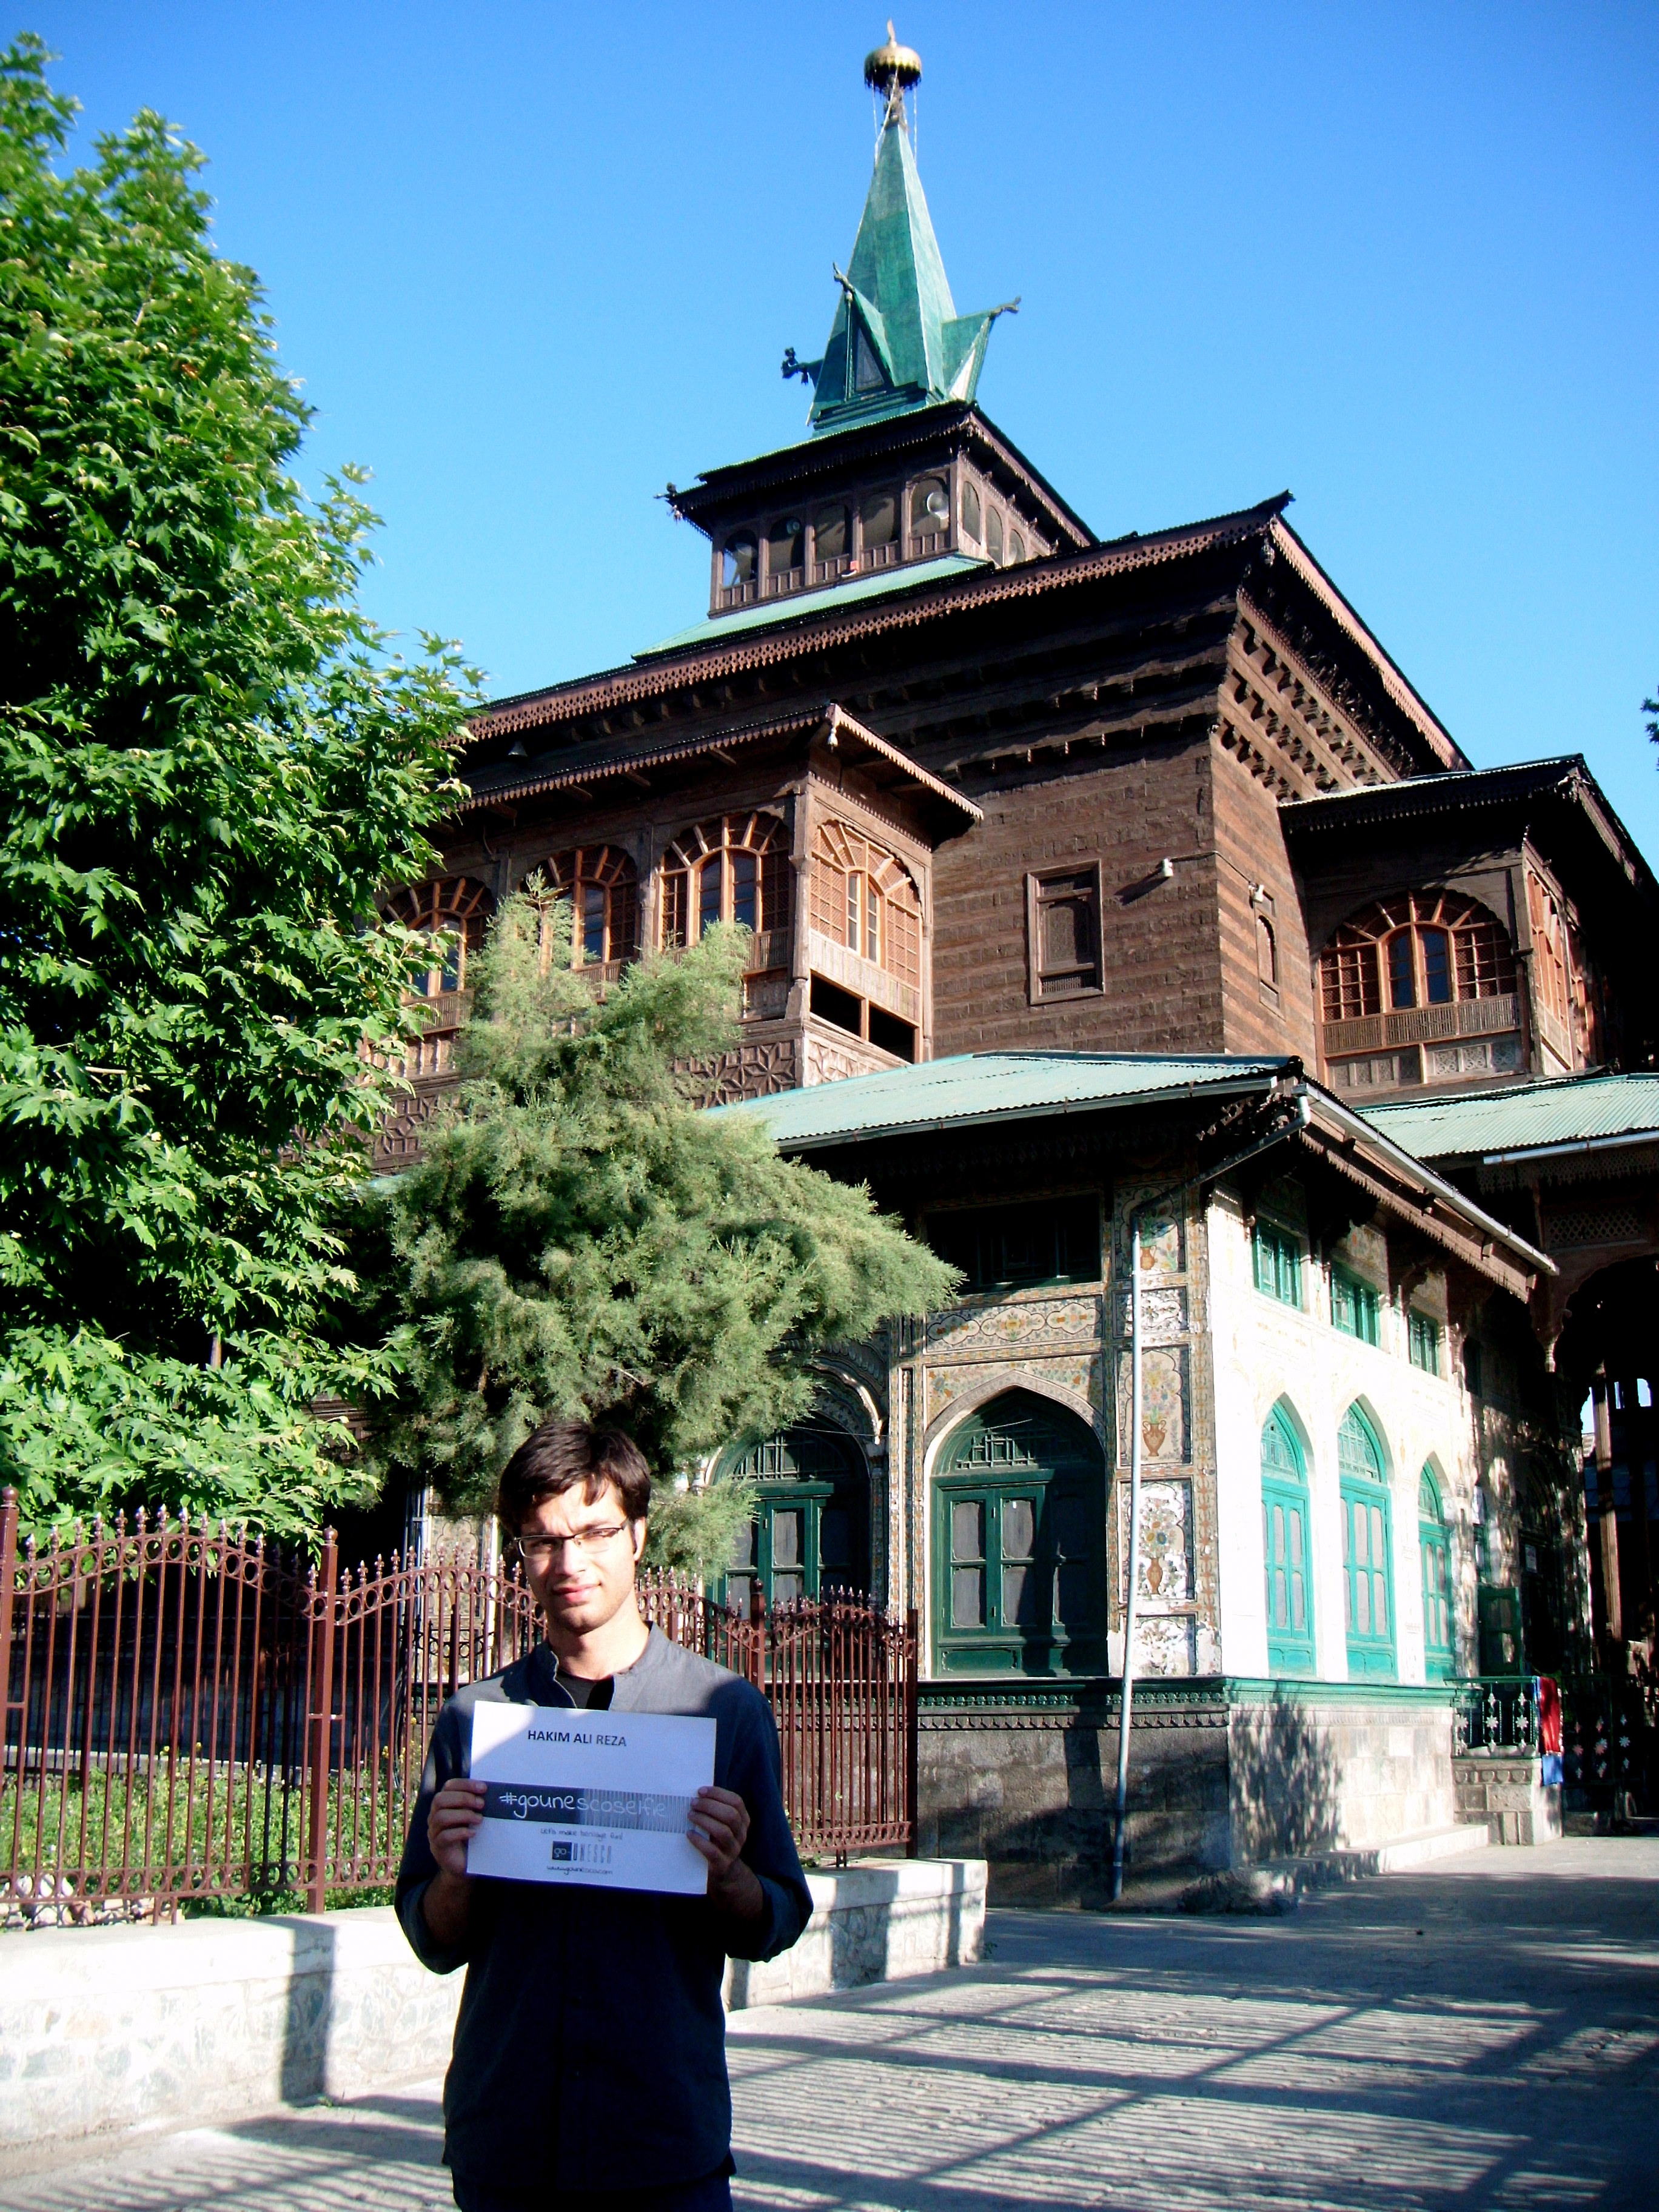 The Khanqah-i-Maulla also known as Shah-i-Hamdan is a shrine located in the old city of Srinagar in Jammu and Kashmir. The khanqah was  built in 14th century (r. 1733AD) during Sultan Sikander's reign on the site of sufa (raised floor) constructed by Mir Syed Ali Hamdani, son of the governor of Hamdan, a province in Iran, who was responsible for introducing kaburwi Sufi order in Kashmir. The khanqah lies on the right bank of river Jhelum and is one of the best examples of traditional monumental wooden architecture entirely constructed of solid wooden blocks used as headers and stretchers with brick infill. It consists of two storied building square in plan standing on a well-dressed stone foundation This shrine holds a high significance towards the history of the Srinagar city as its construction marked the beginning of a new religious belief and even today, almost after six centuries of the construction of this hospice, it is visited by a huge number of local as well as national and international tourists and caters to many large religious gatherings.   The overall experience of the visit was great, as the building in itself is awe-inspiring, and being a religious monument, one can feel the divine aura associated to it.